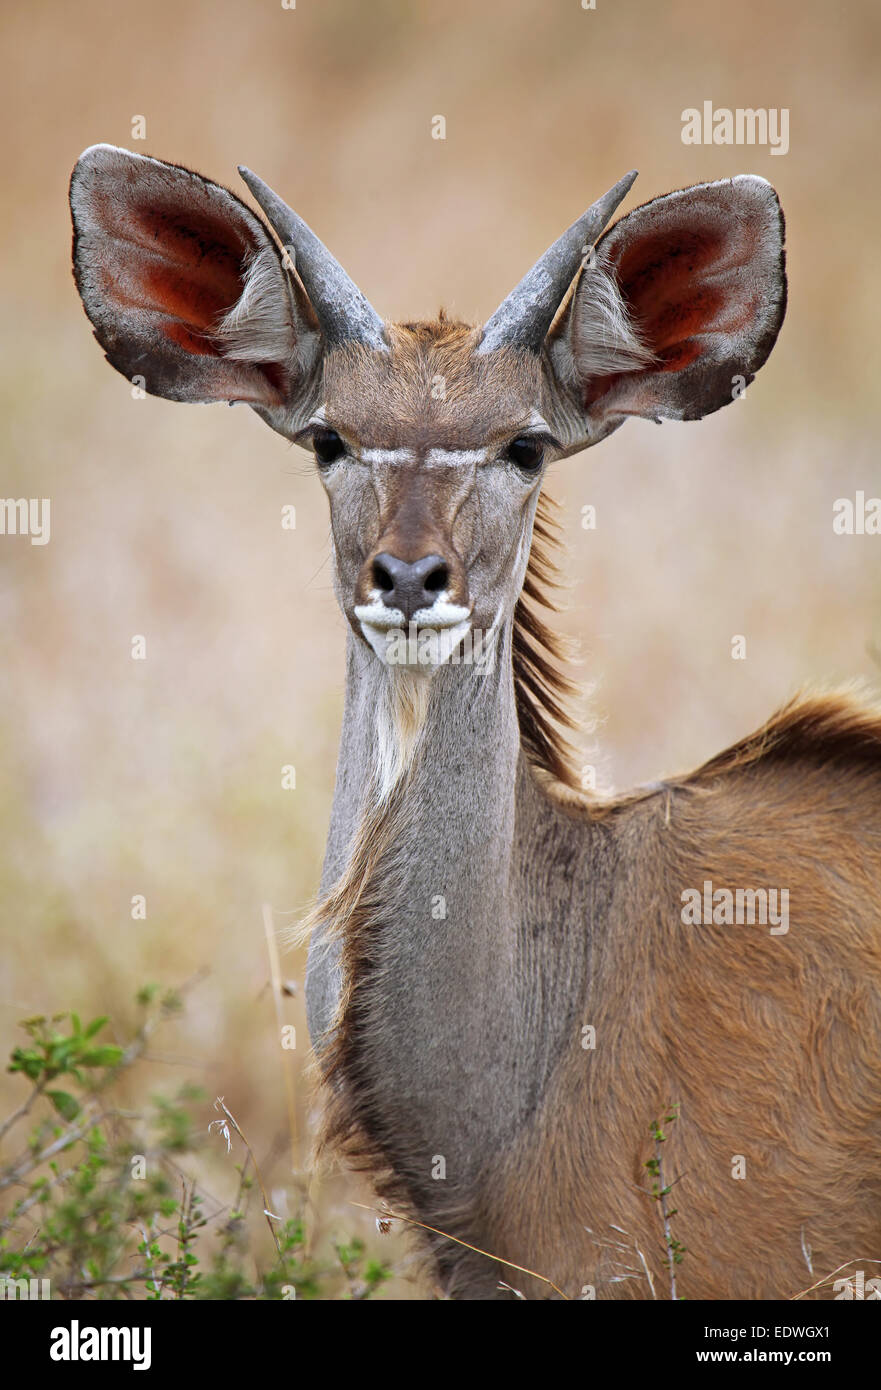 young Greater Kudu in South Africa, Tragelaphus strepsiceros - Stock Image